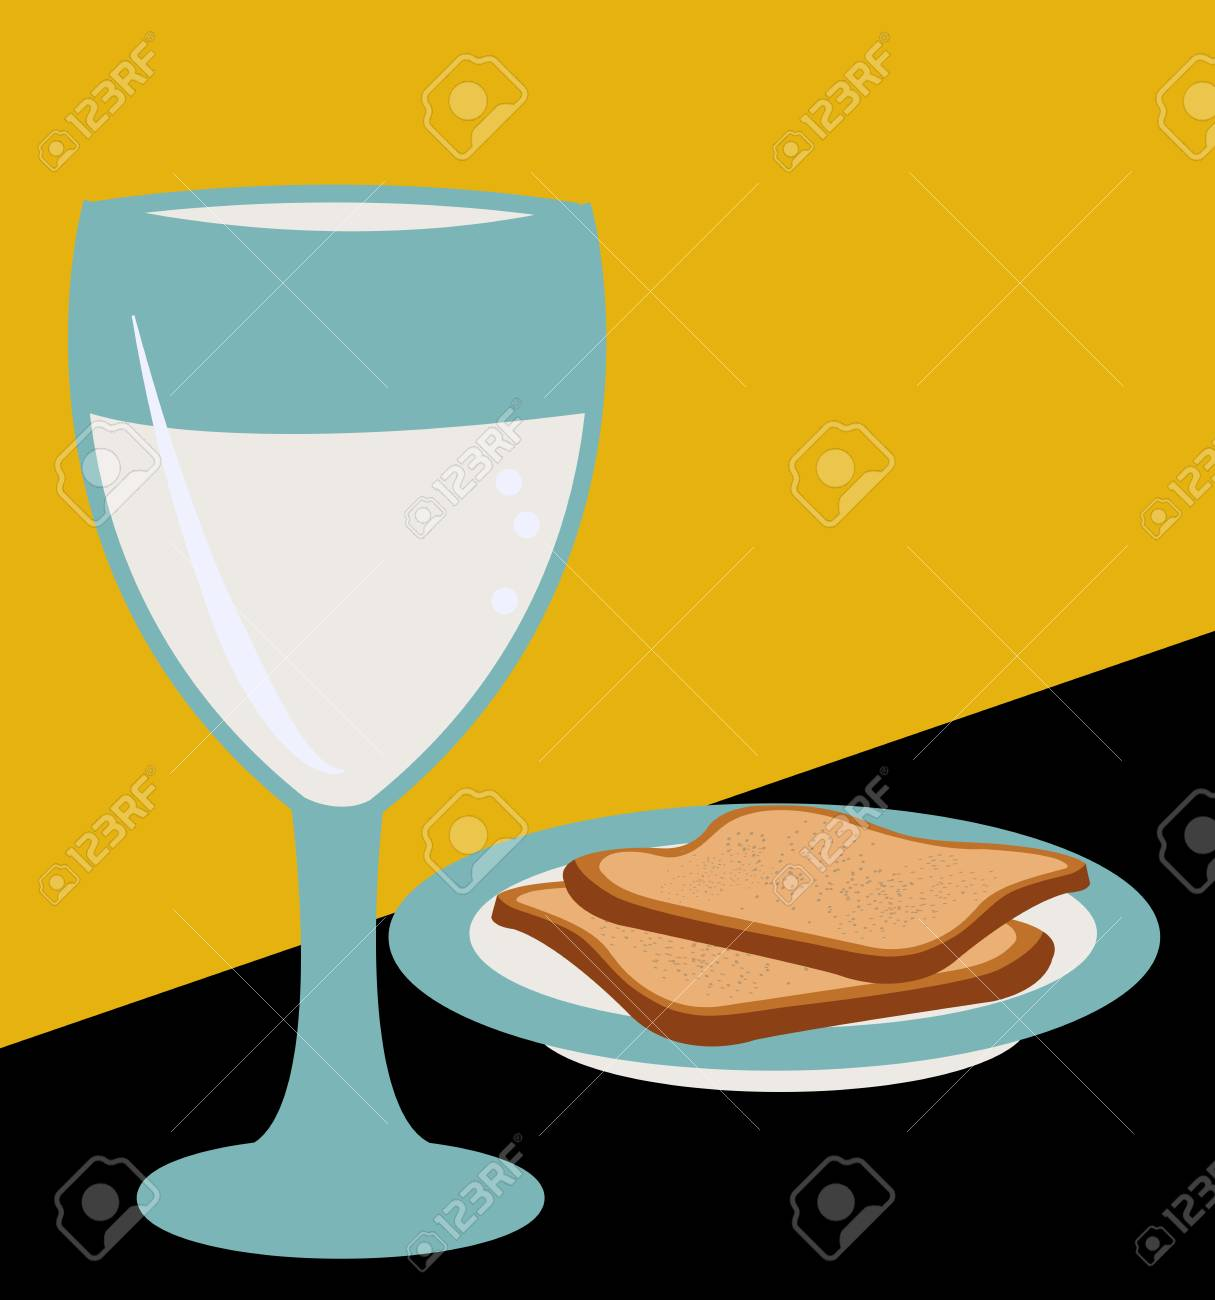 Illustration Of Two Slices Of Bread On A Plate With A Glass Of Royalty Free Cliparts Vectors And Stock Illustration Image 124923681